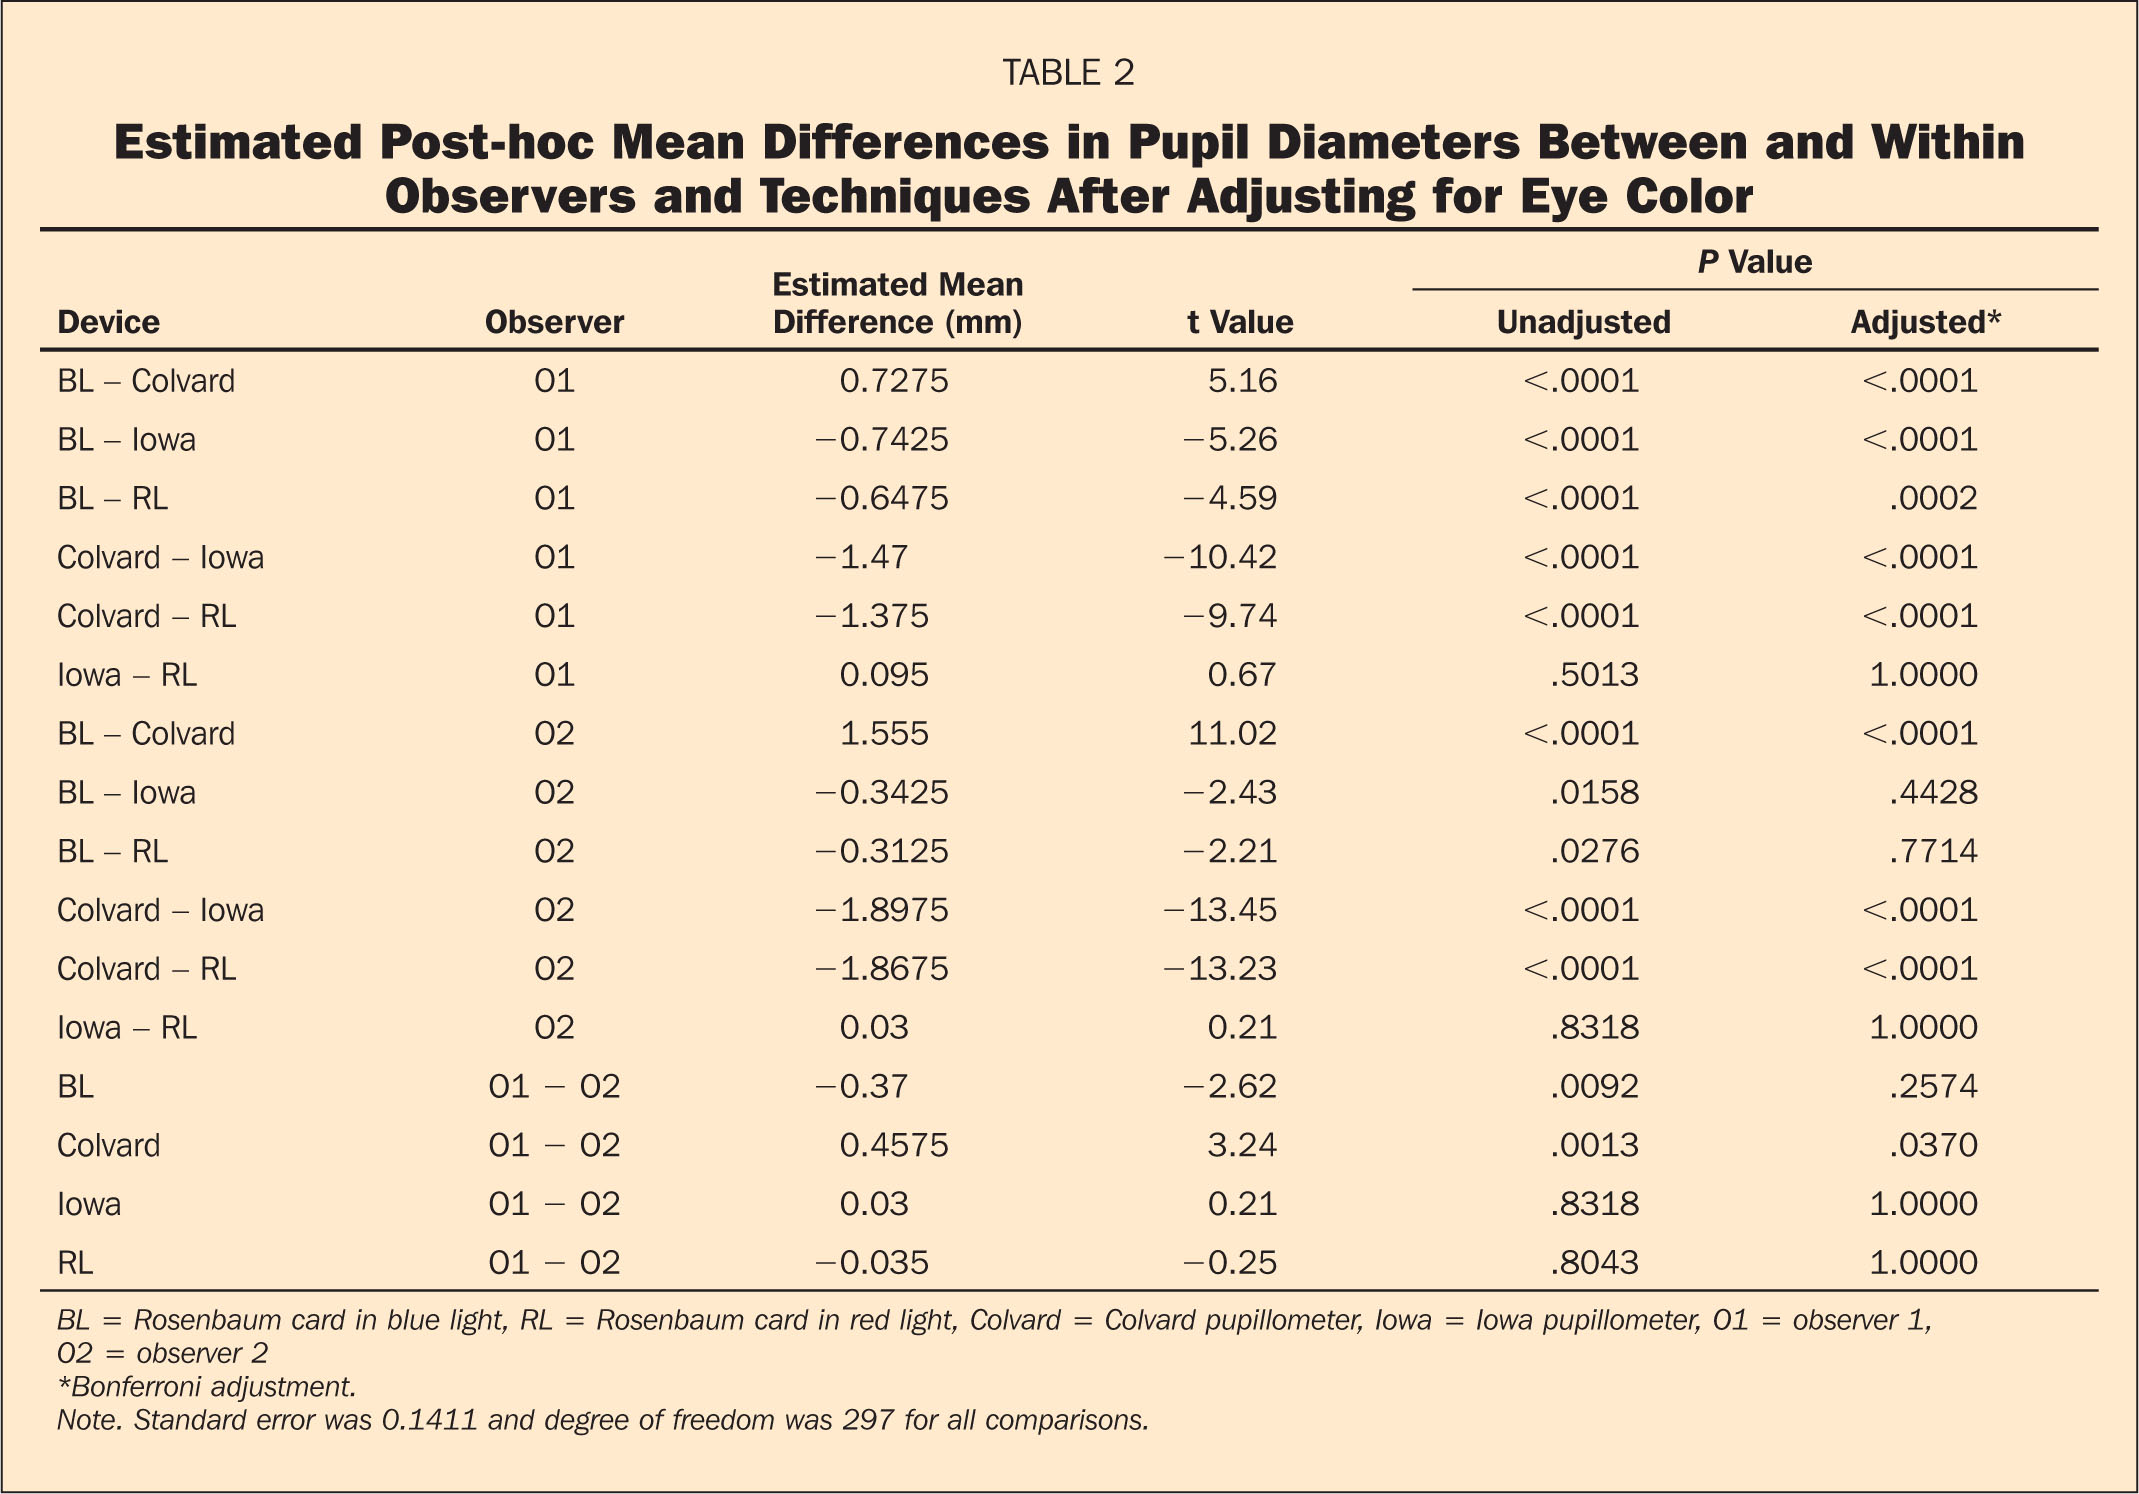 Estimated Post-hoc Mean Differences in Pupil Diameters Between and Within Observers and Techniques After Adjusting for Eye Color